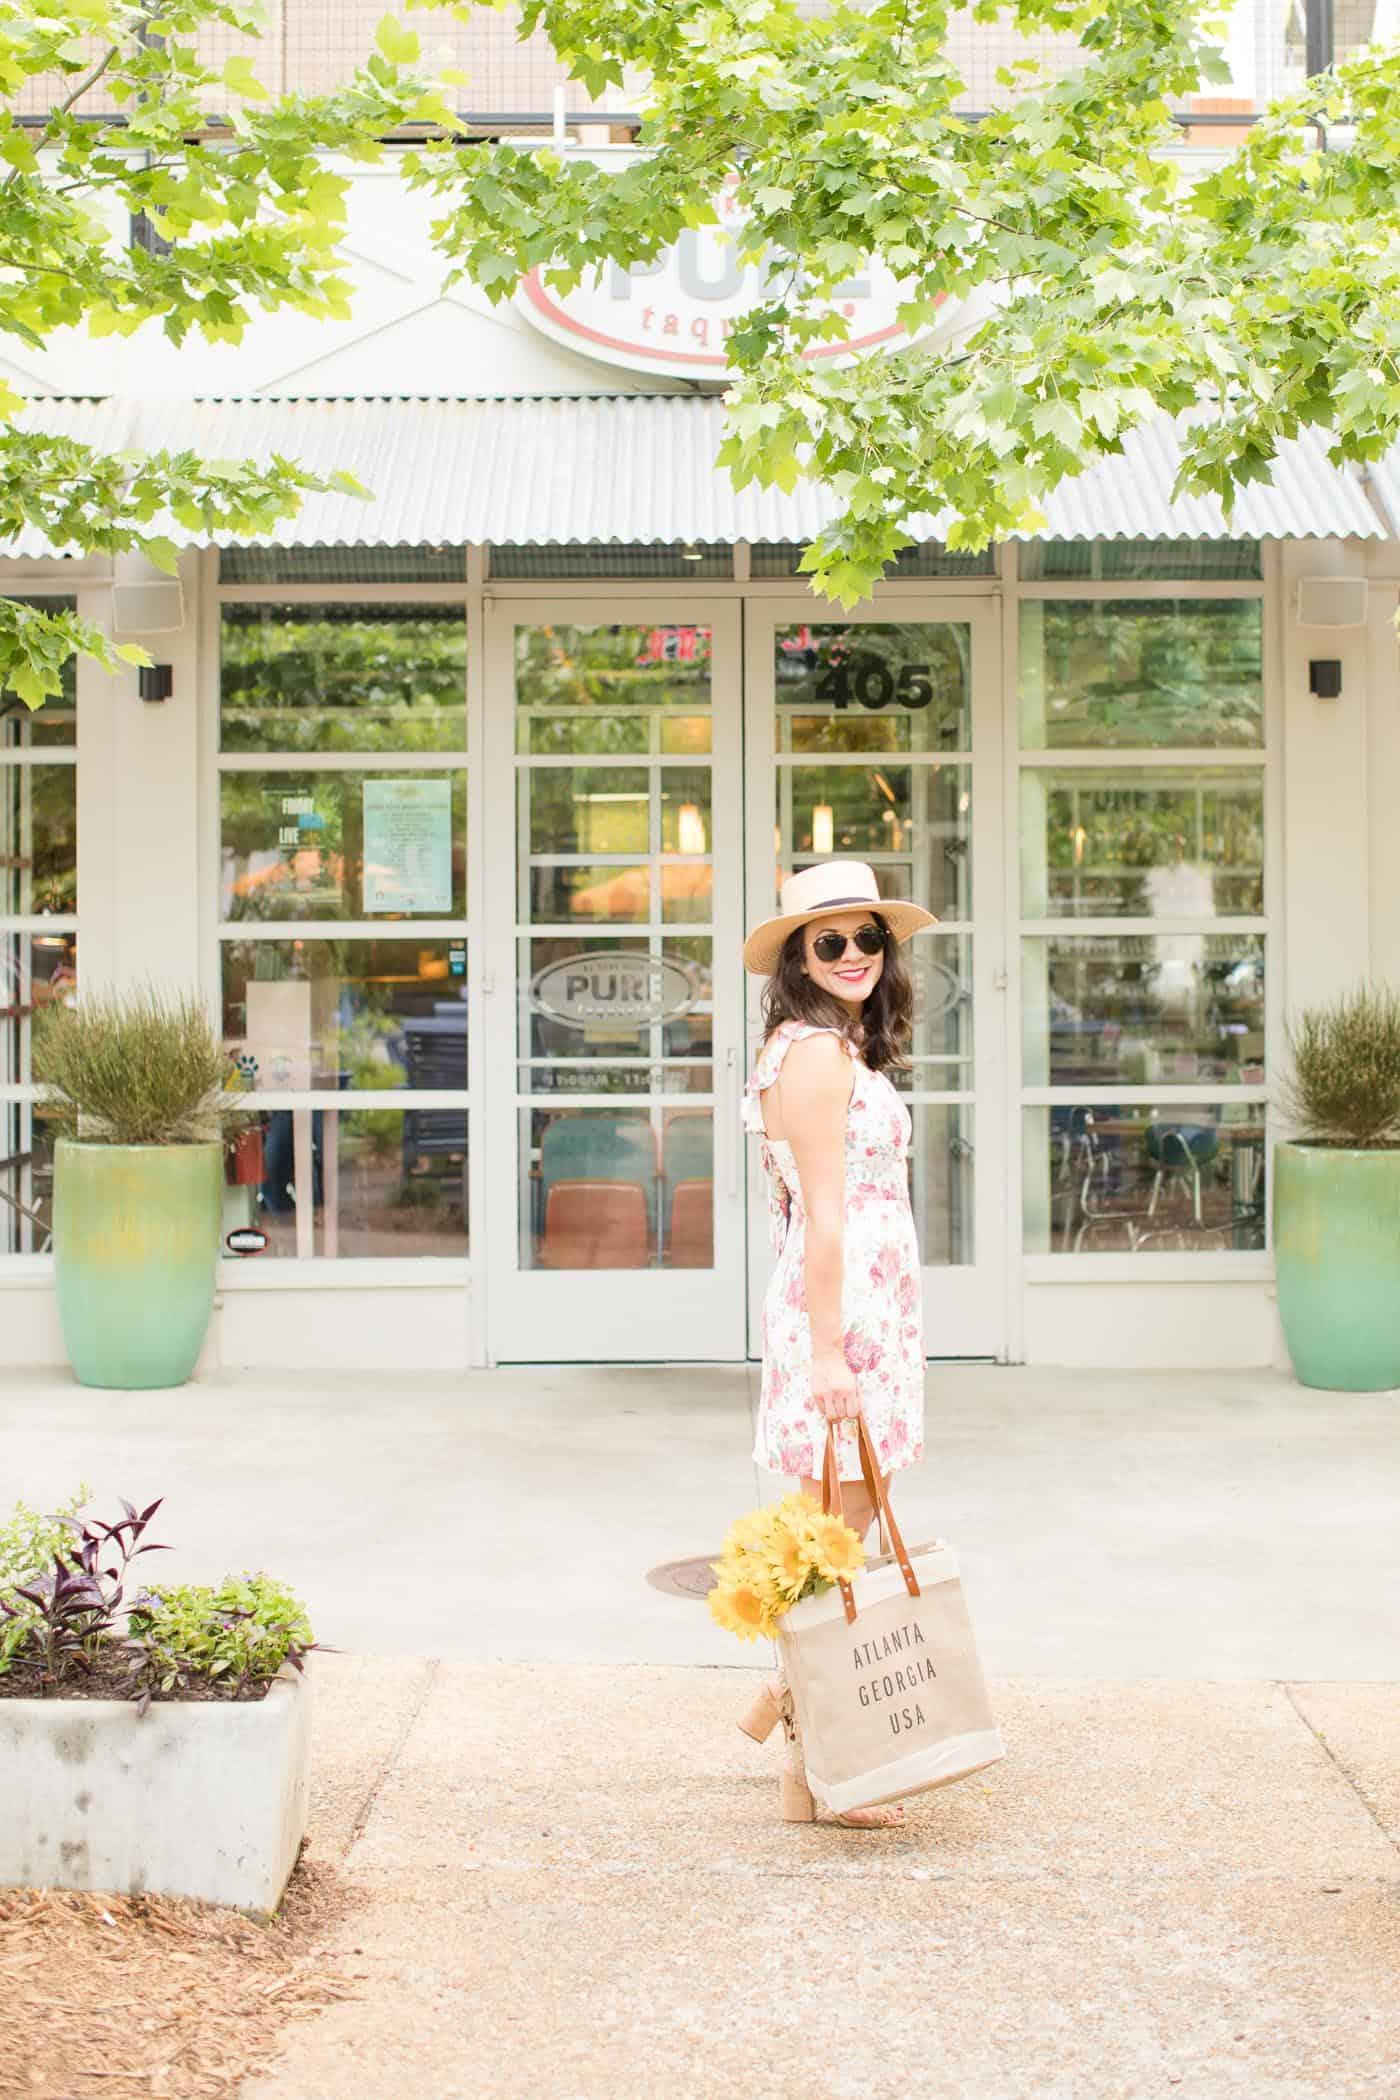 floral dress and sunflowers, summer outfits - My Style Vita @mystylevita